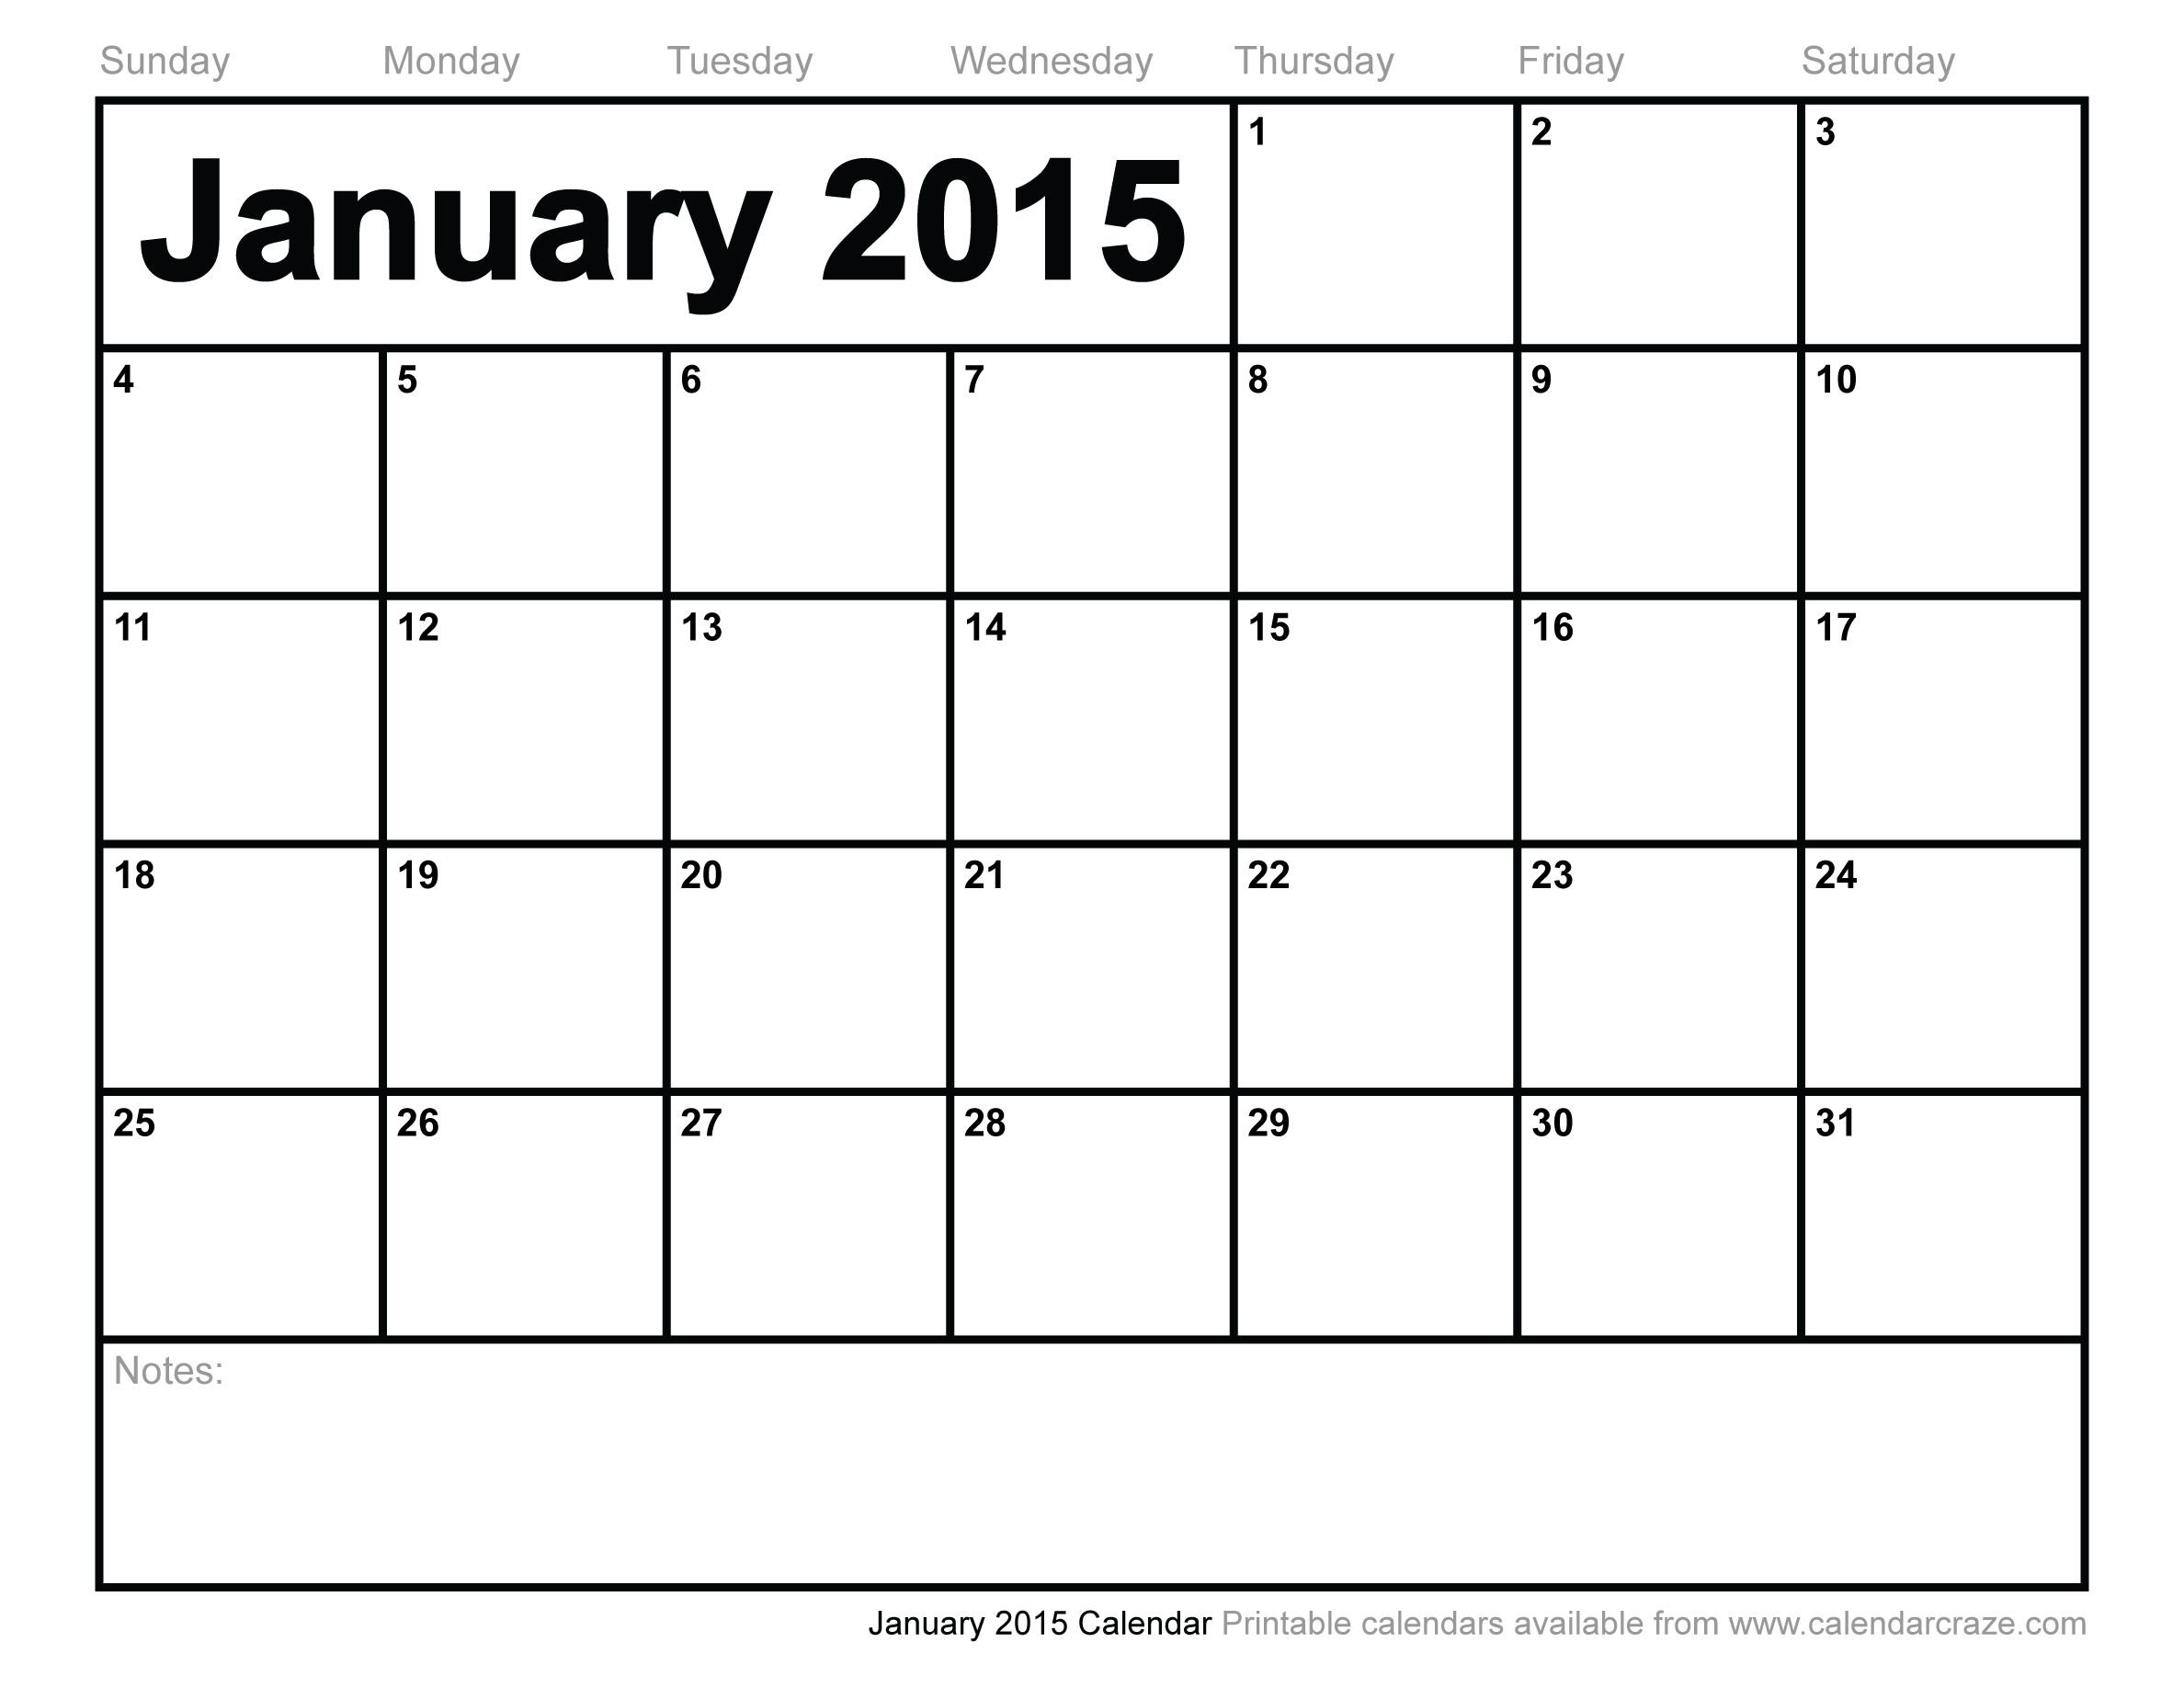 5 Images of January 2015 Calendar Printable